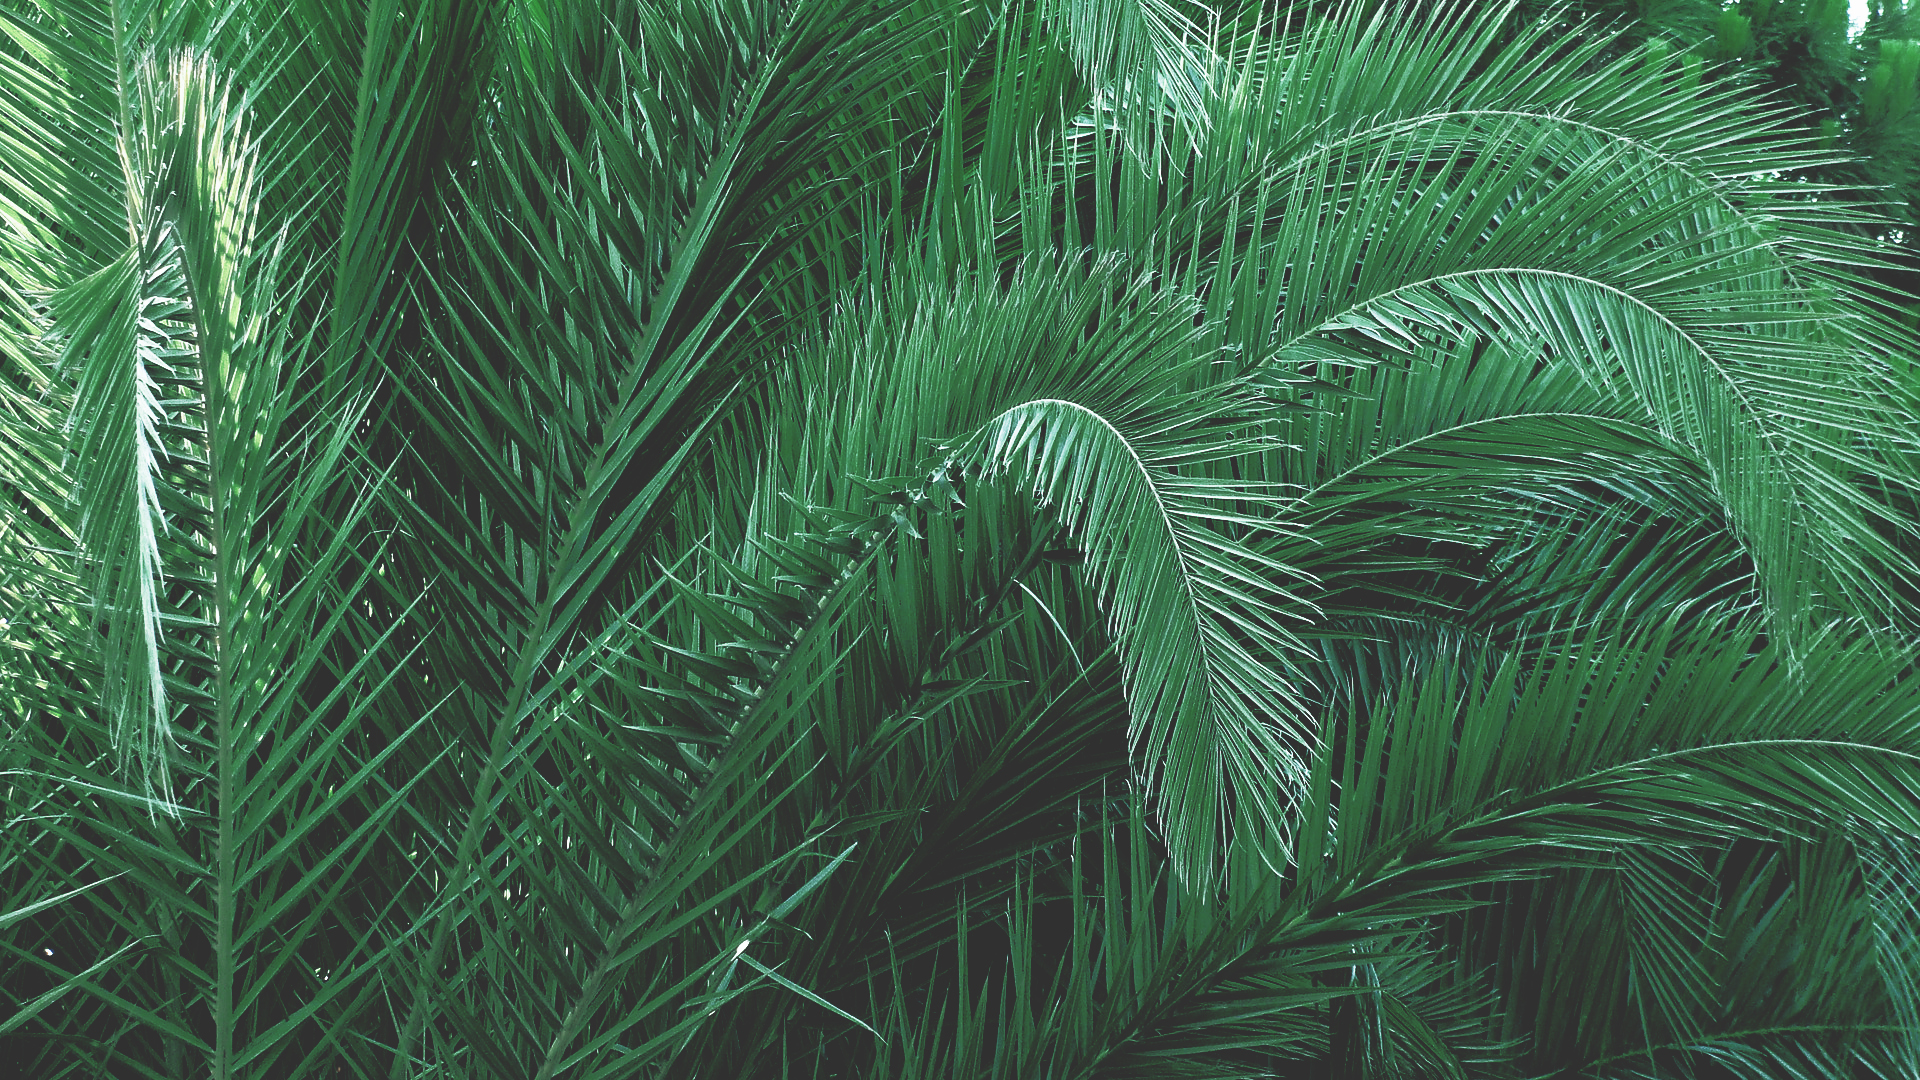 Green Plants · Free Stock Photo